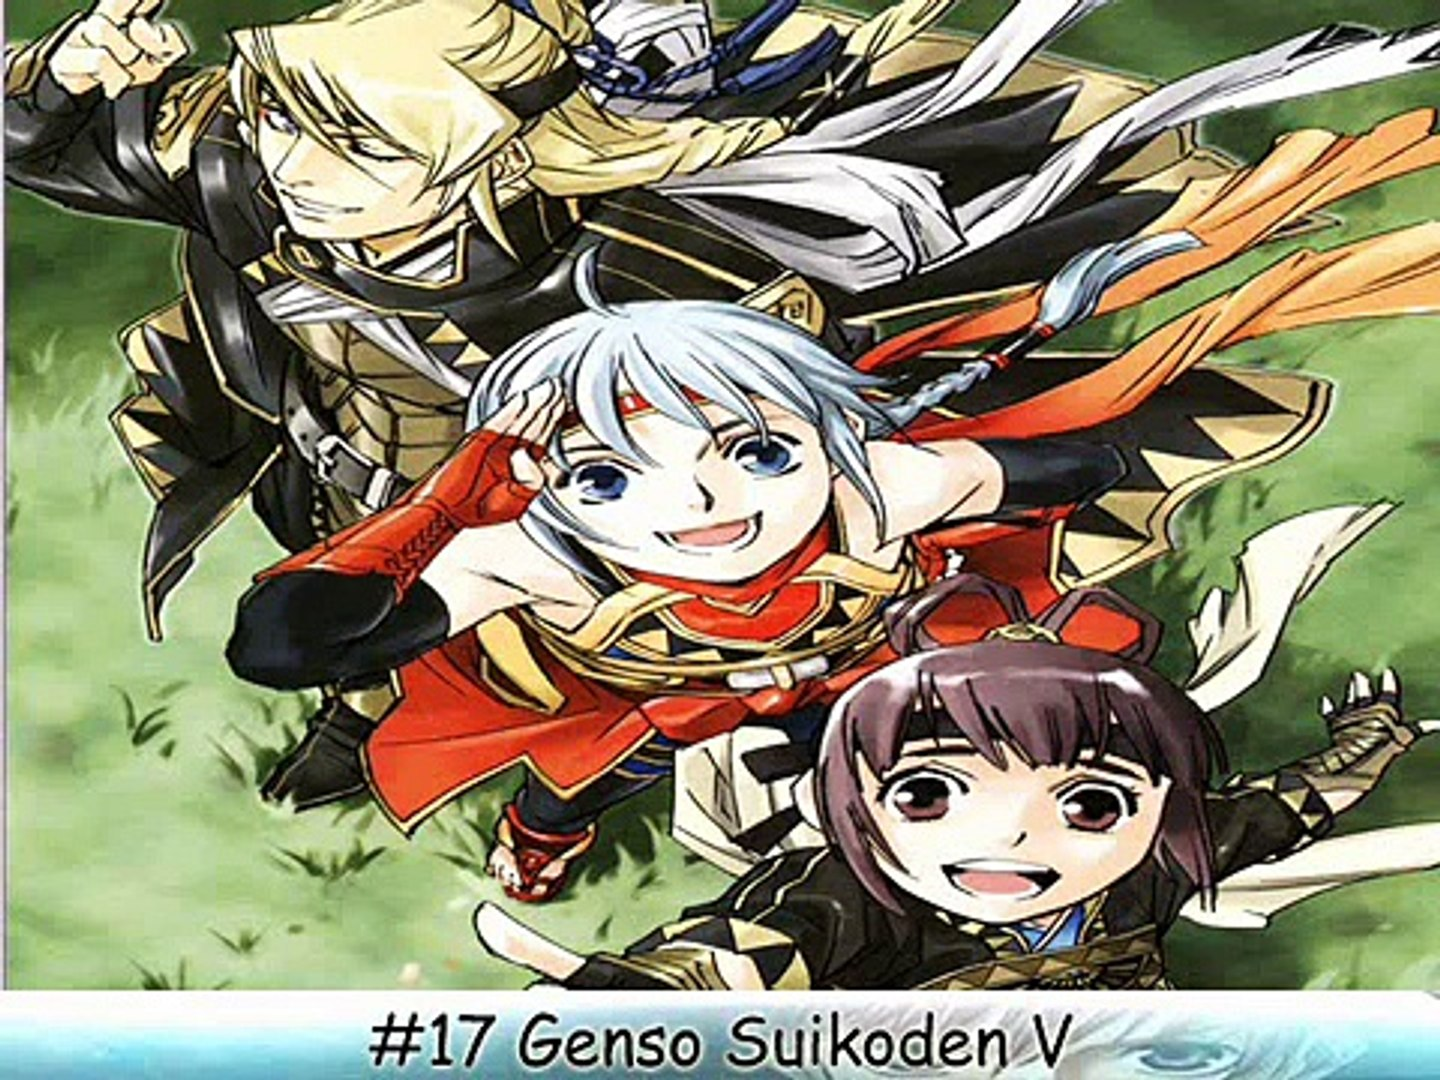 [TOP 50] RPG World Map Themes #17 Genso Suikoden V